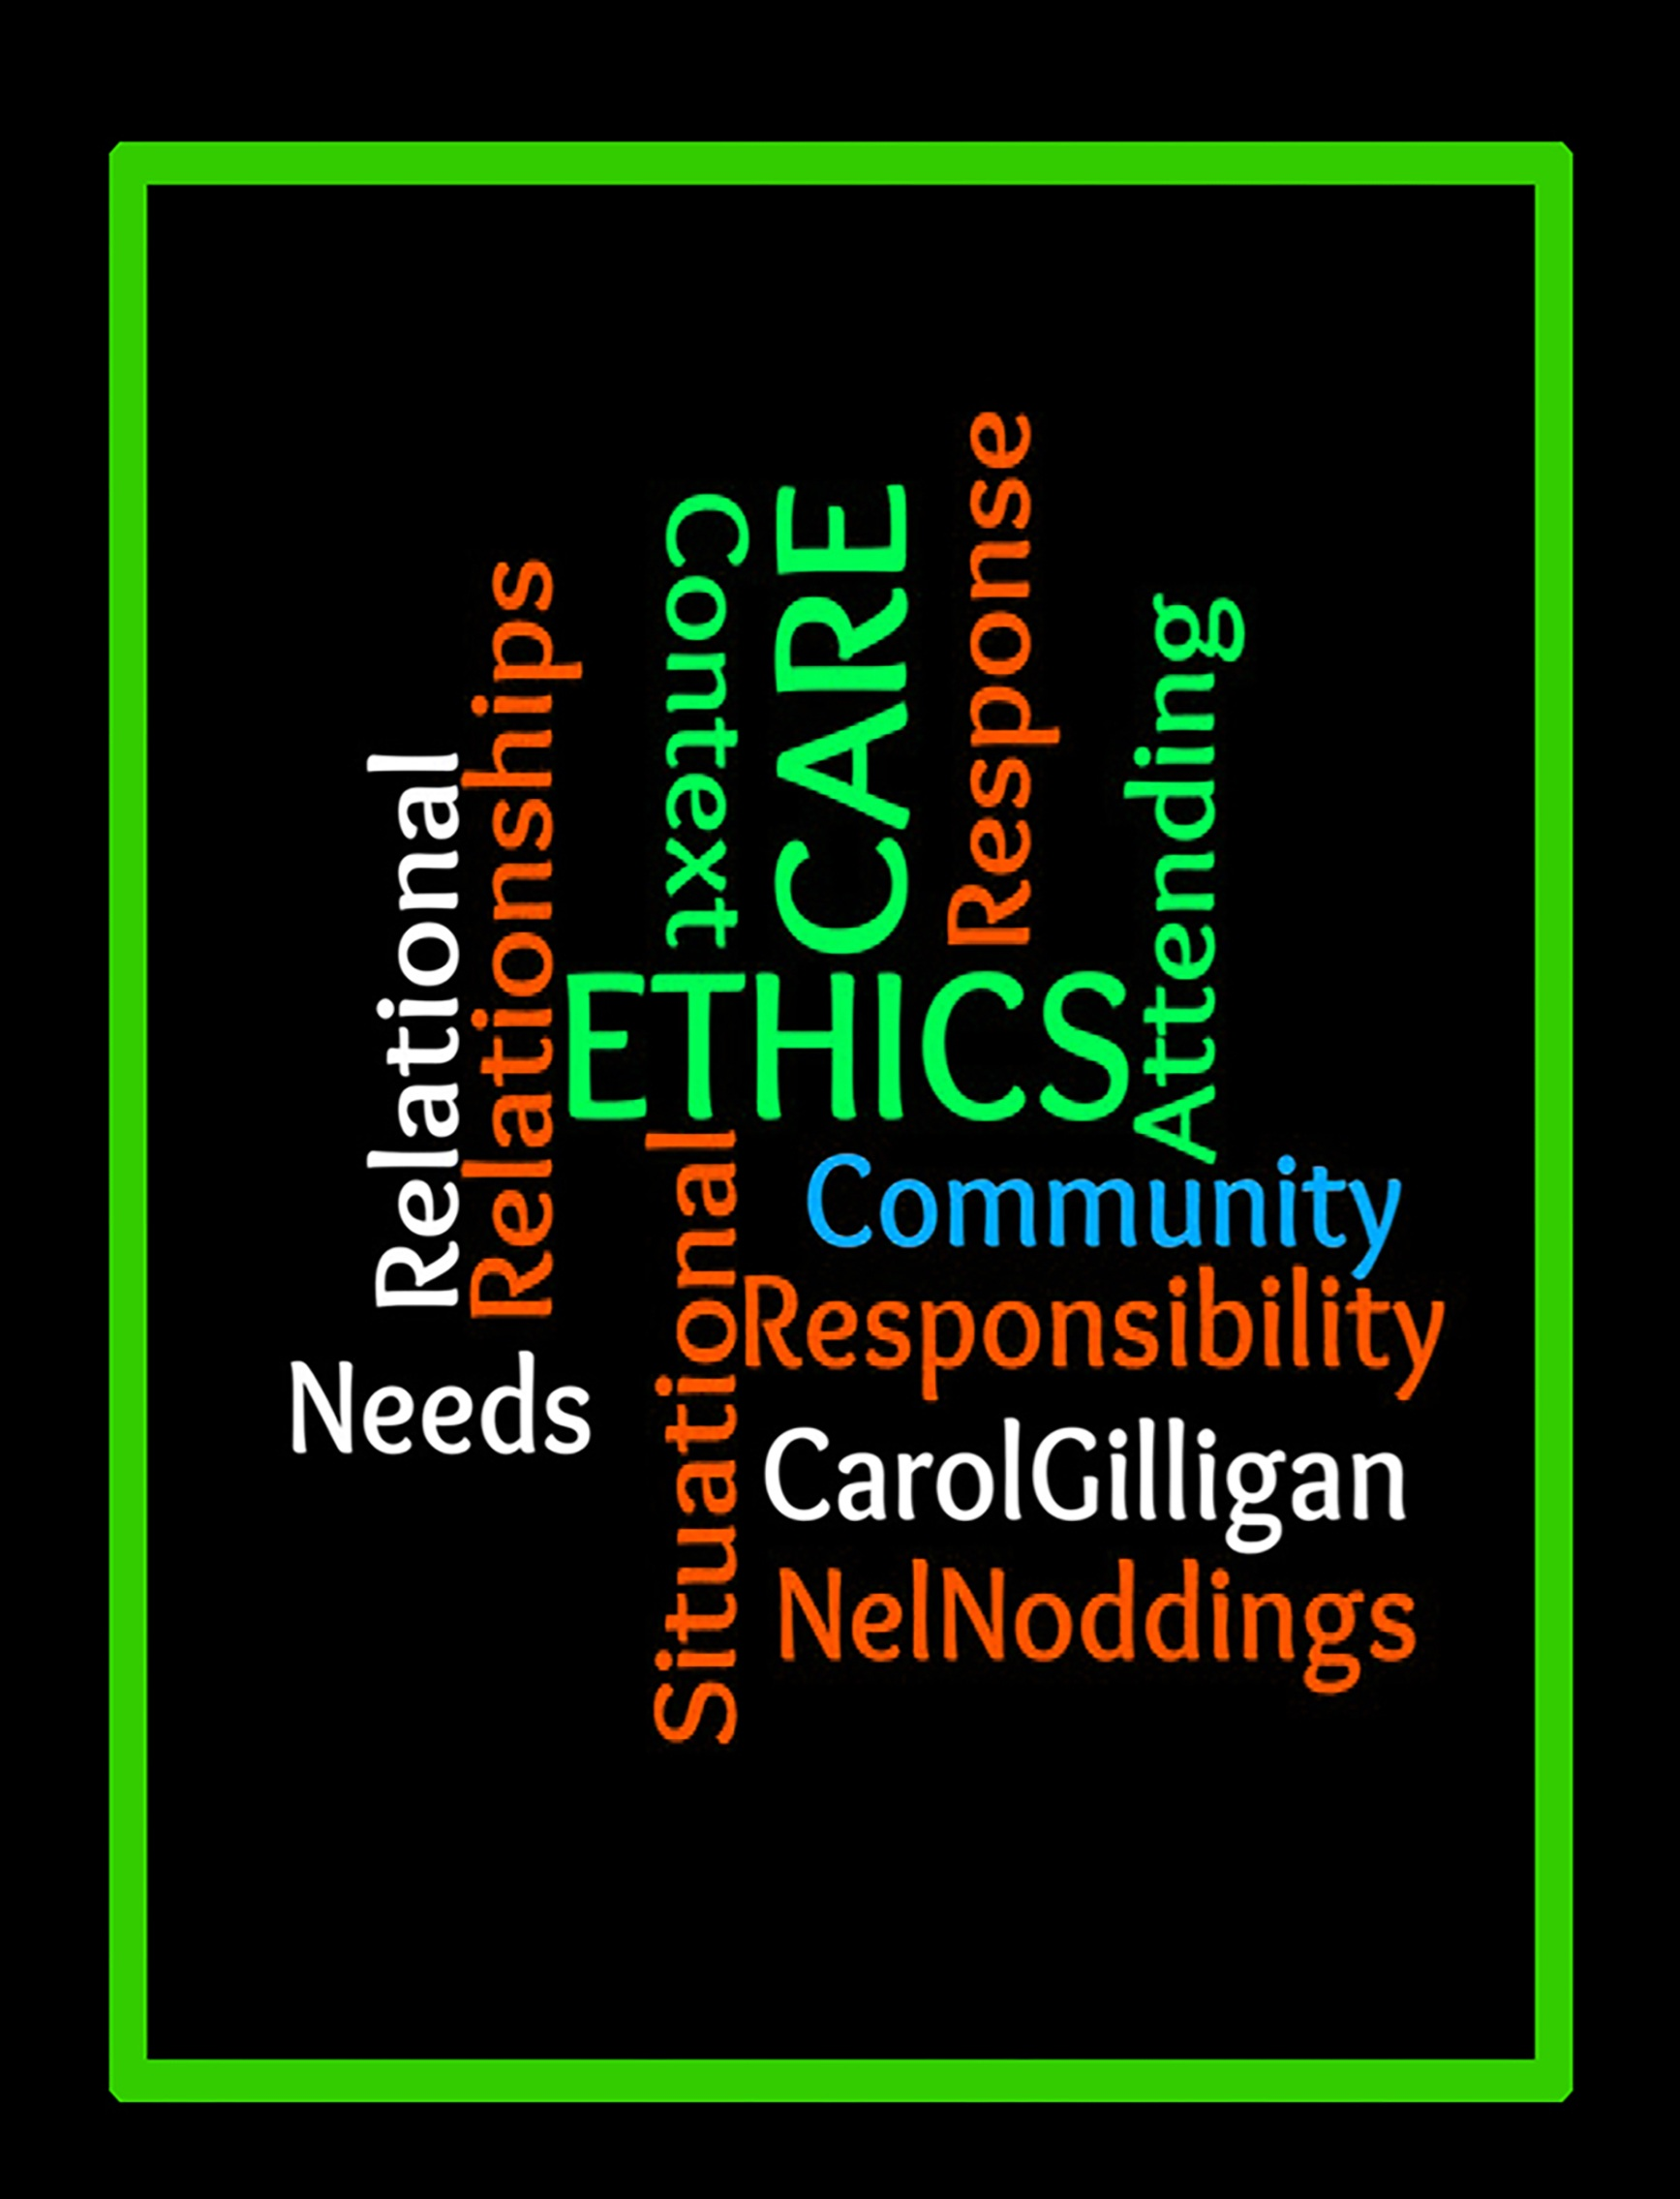 How to Build a Sustainable Ethical Business